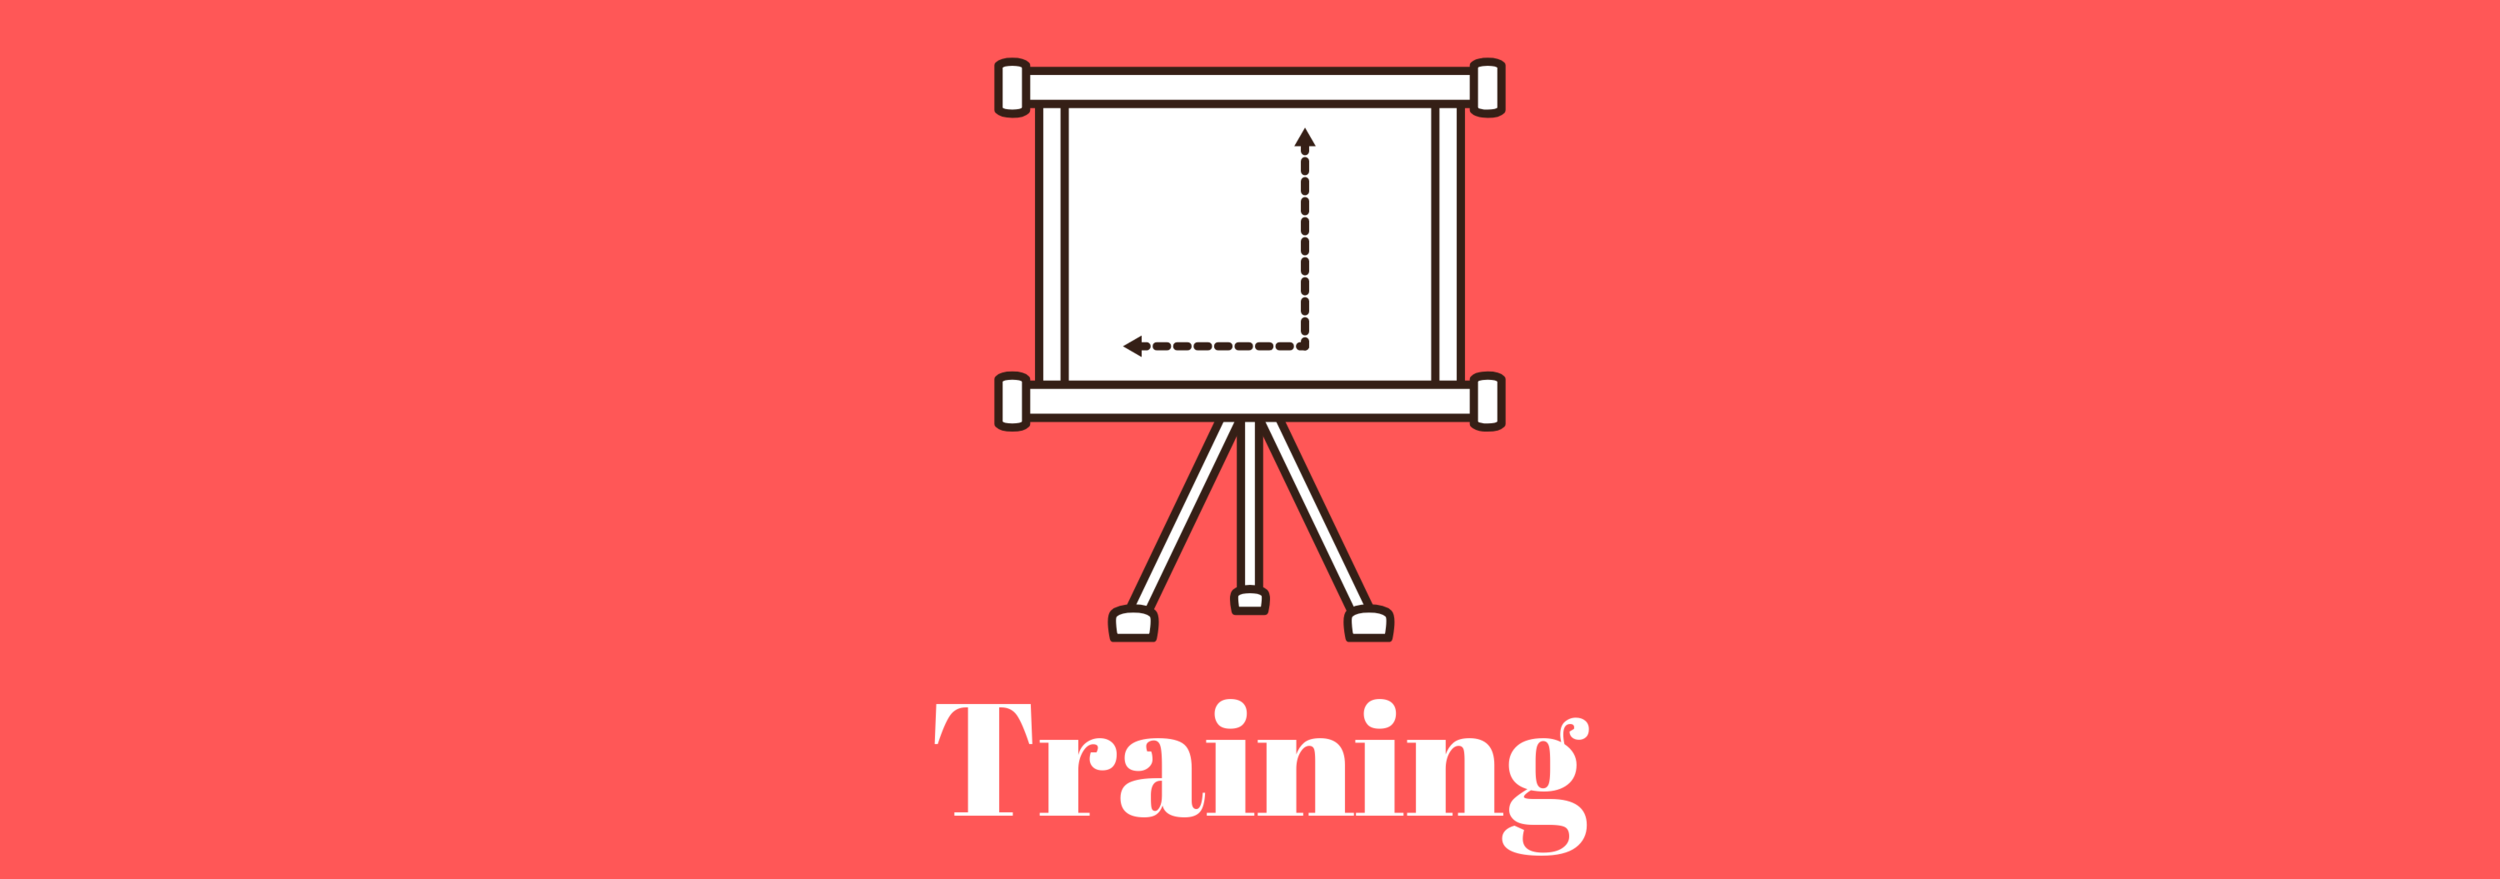 Training (1).png